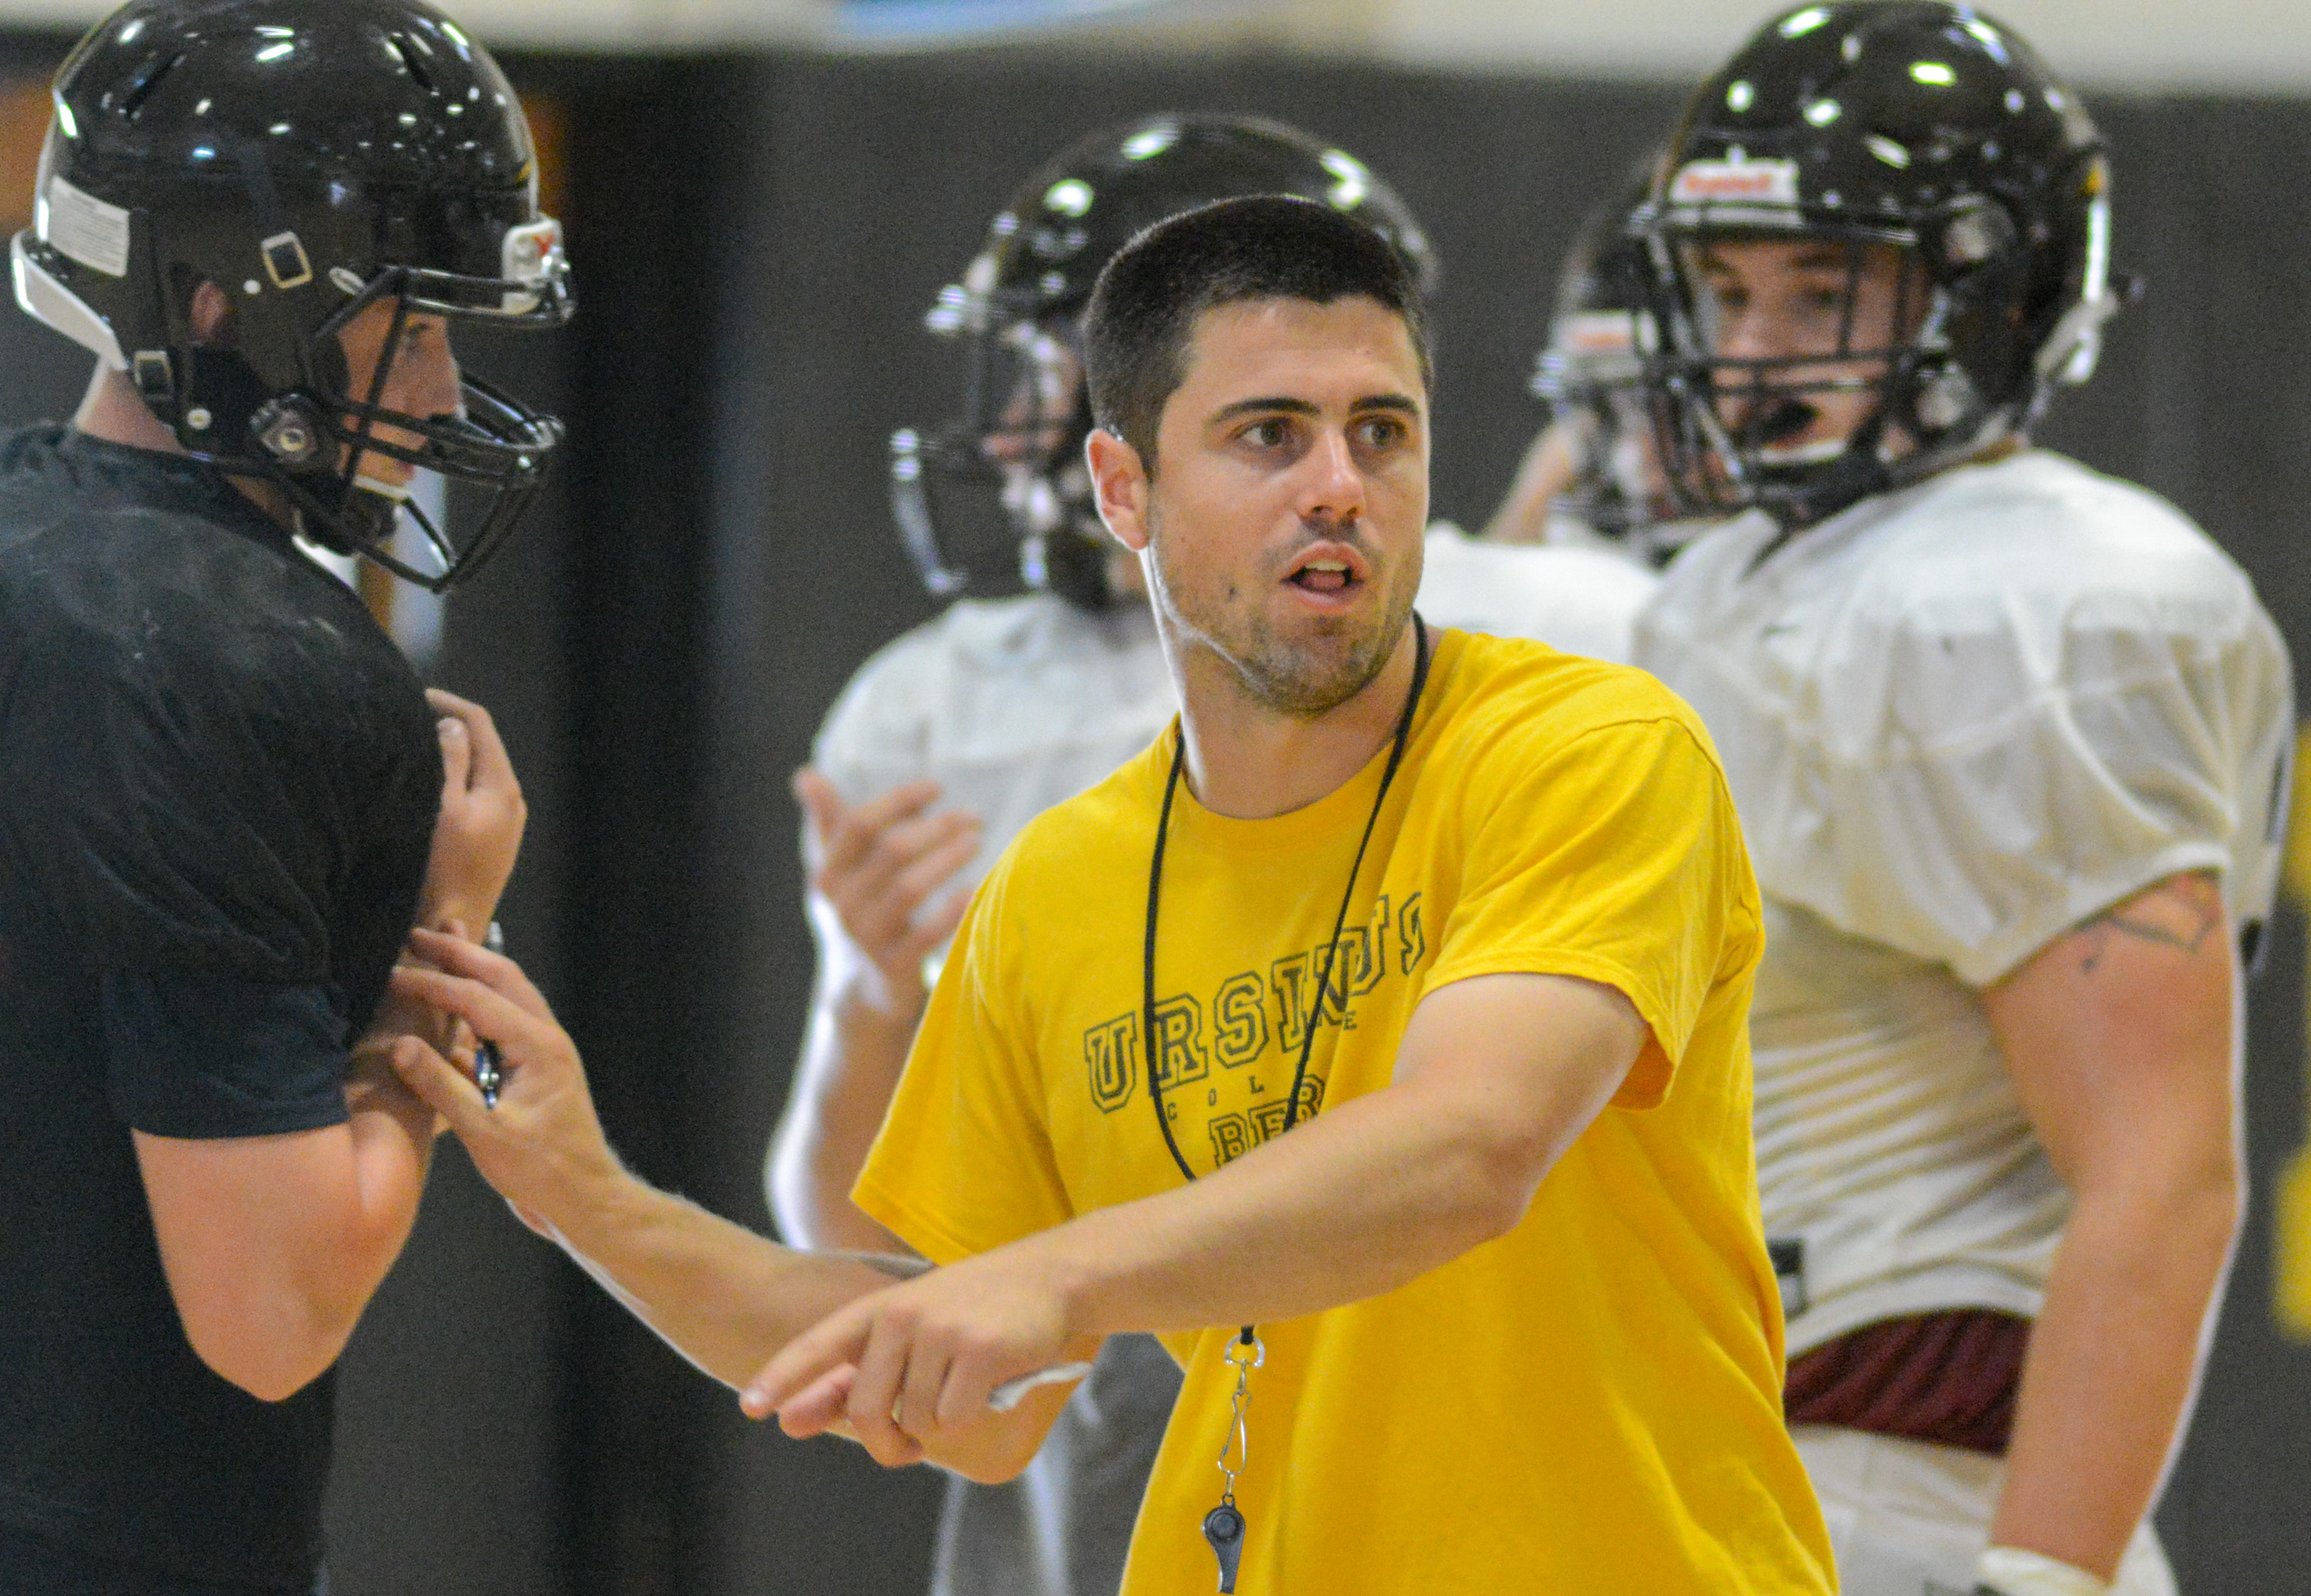 New Archbishop Wood football head coach Kyle Adkins gives direction to his players during practice on Tuesday.